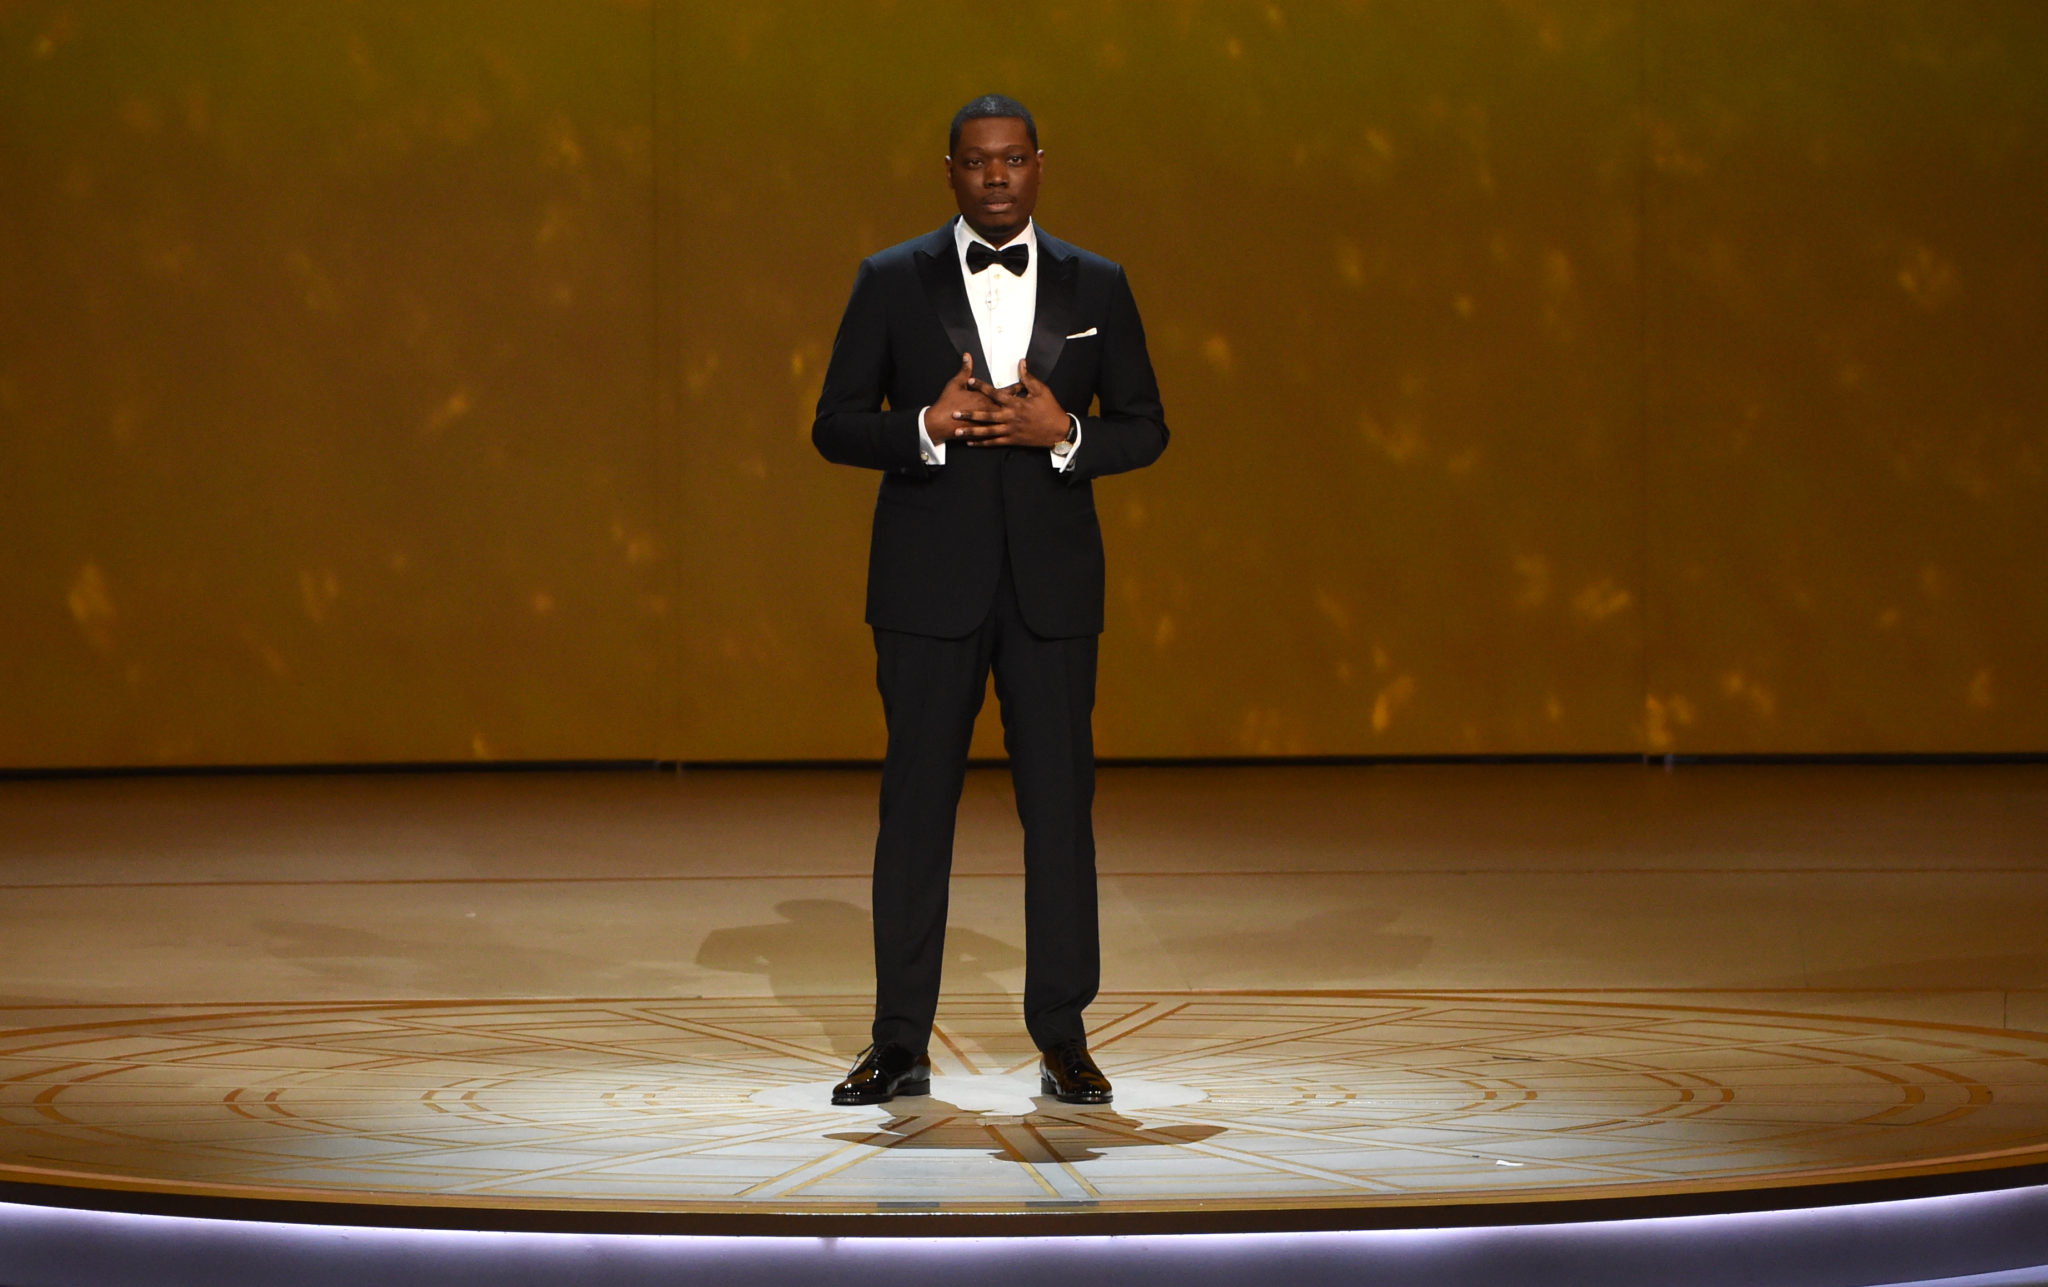 Michael Che Emmys 4Chion Lifestyle